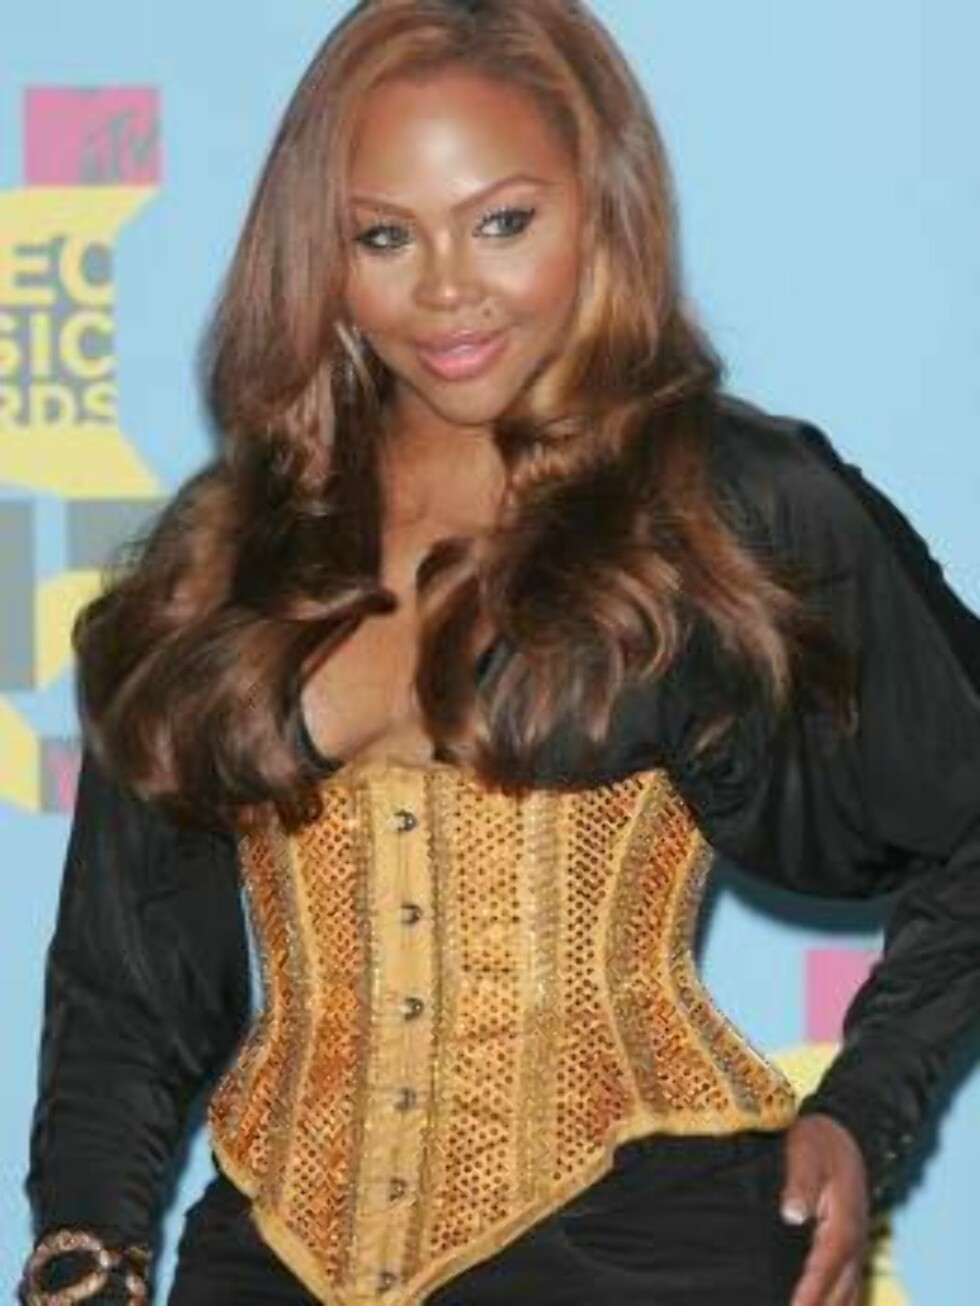 NEW YORK - AUGUST 31:  Rapper Lil Kim poses in the press room during the 2006 MTV Video Music Awards at Radio City Music Hall August 31, 2006 in New York City.  (Photo by Peter Kramer/Getty Images) *** Local Caption *** Lil Kim  * SPECIAL INSTRUCTIONS:  * Foto: All Over Press